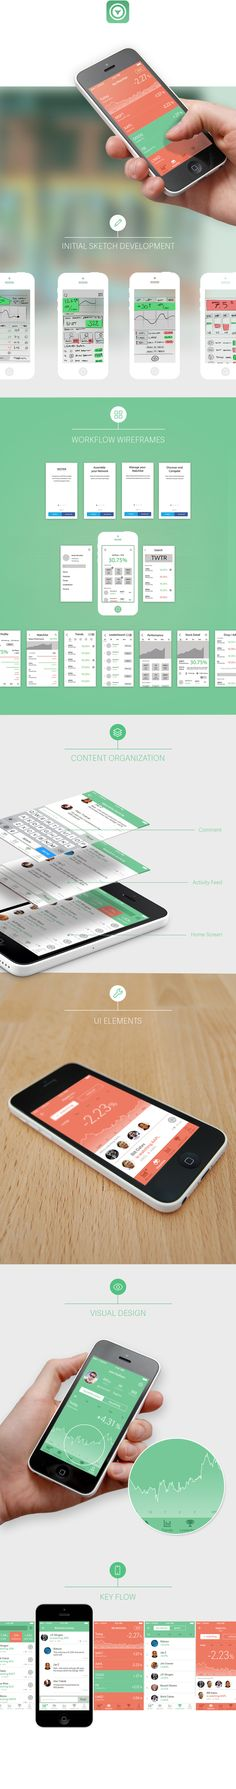 BullsEye Mobile App Design on Behance